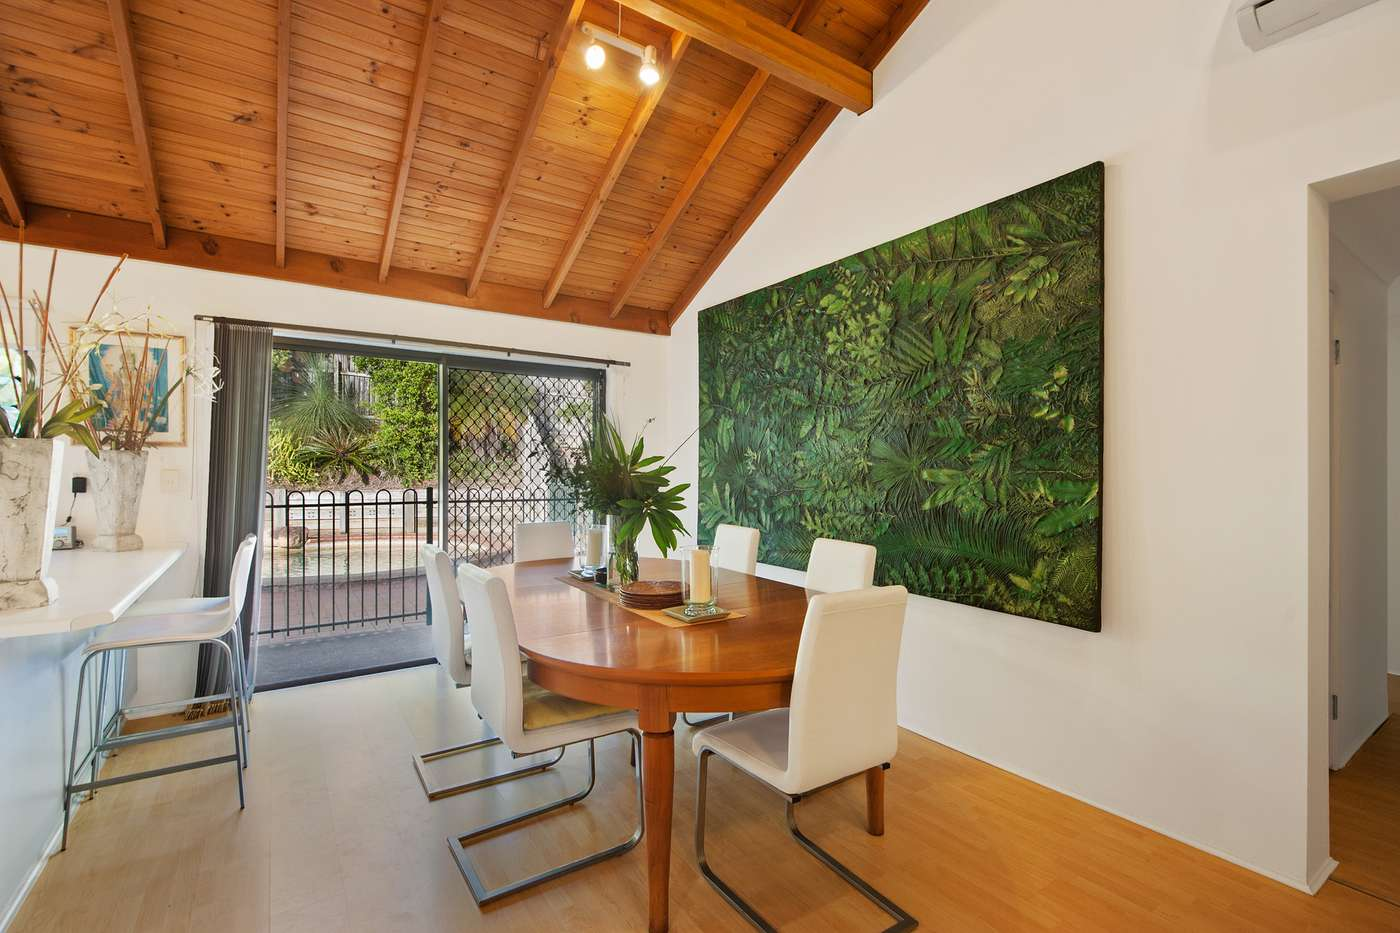 Main view of Homely house listing, 14 Corella Avenue, Samford Village, QLD 4520